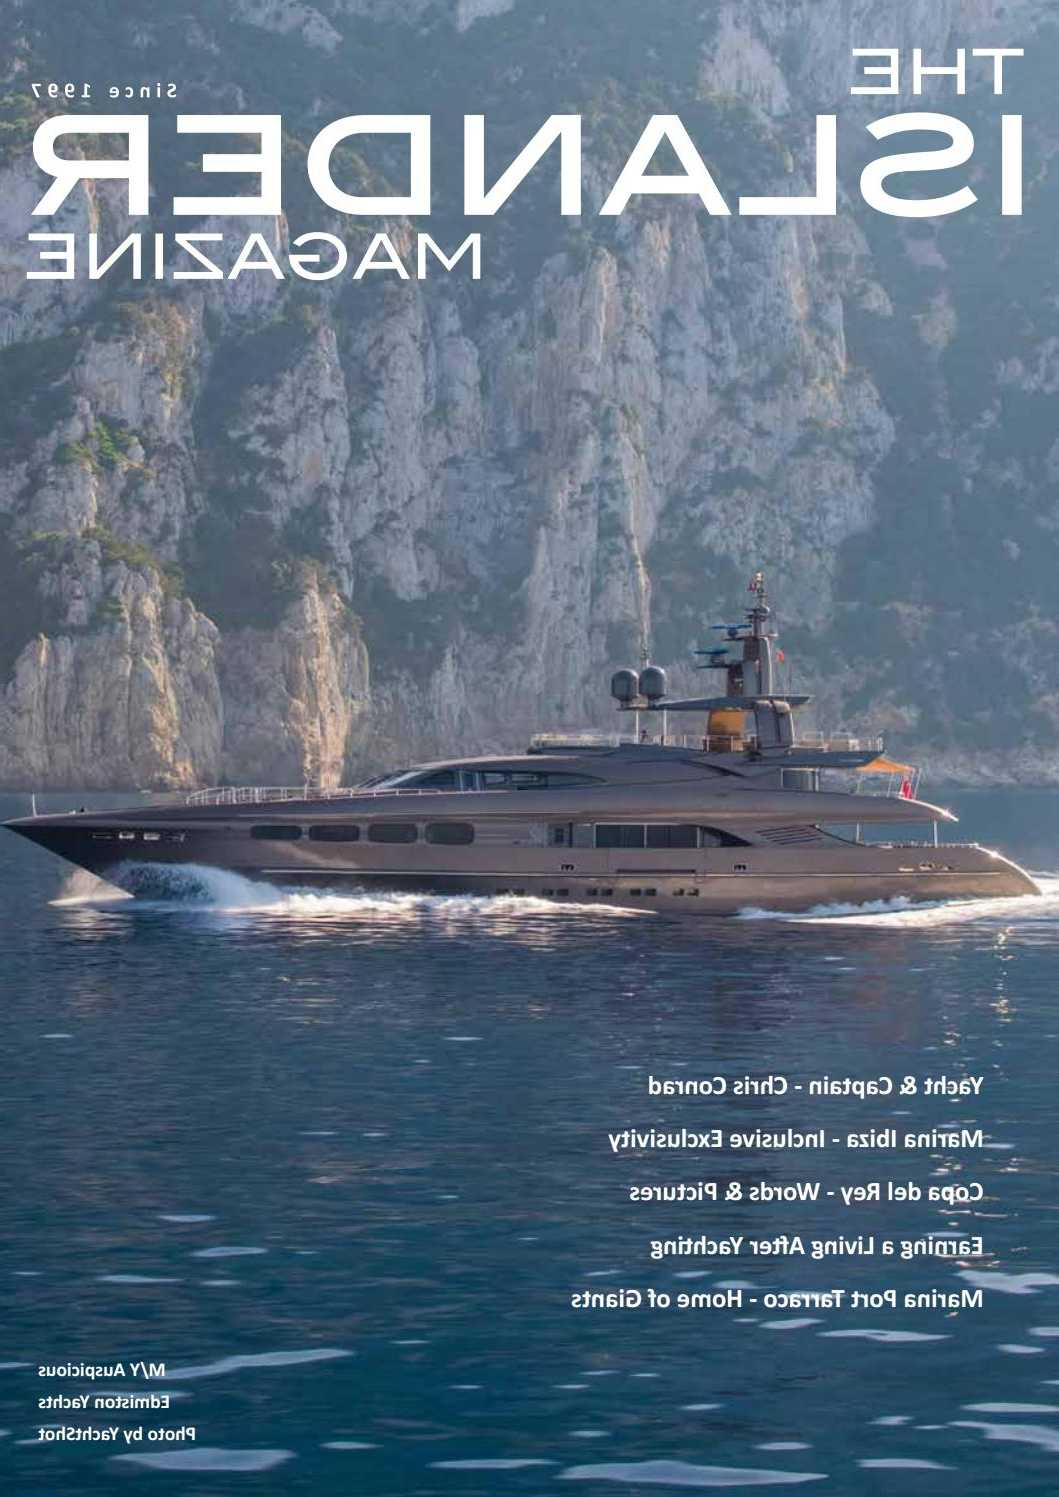 What is the best yacht to buy?